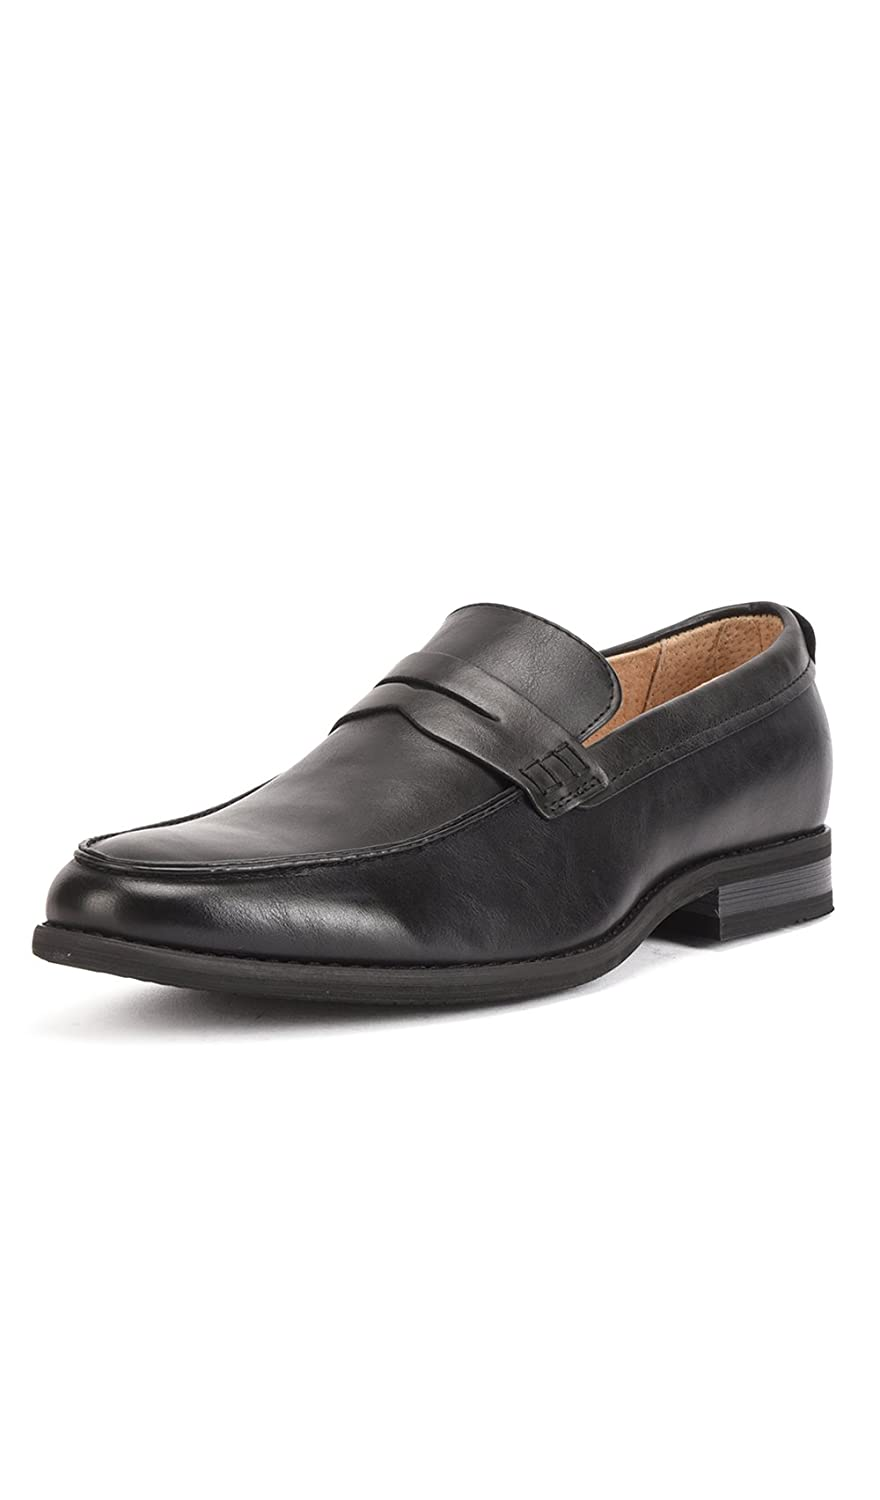 Amazon.com | Reservoir Shoes Moccasin with Square Toe Perm Men Black | Shoes